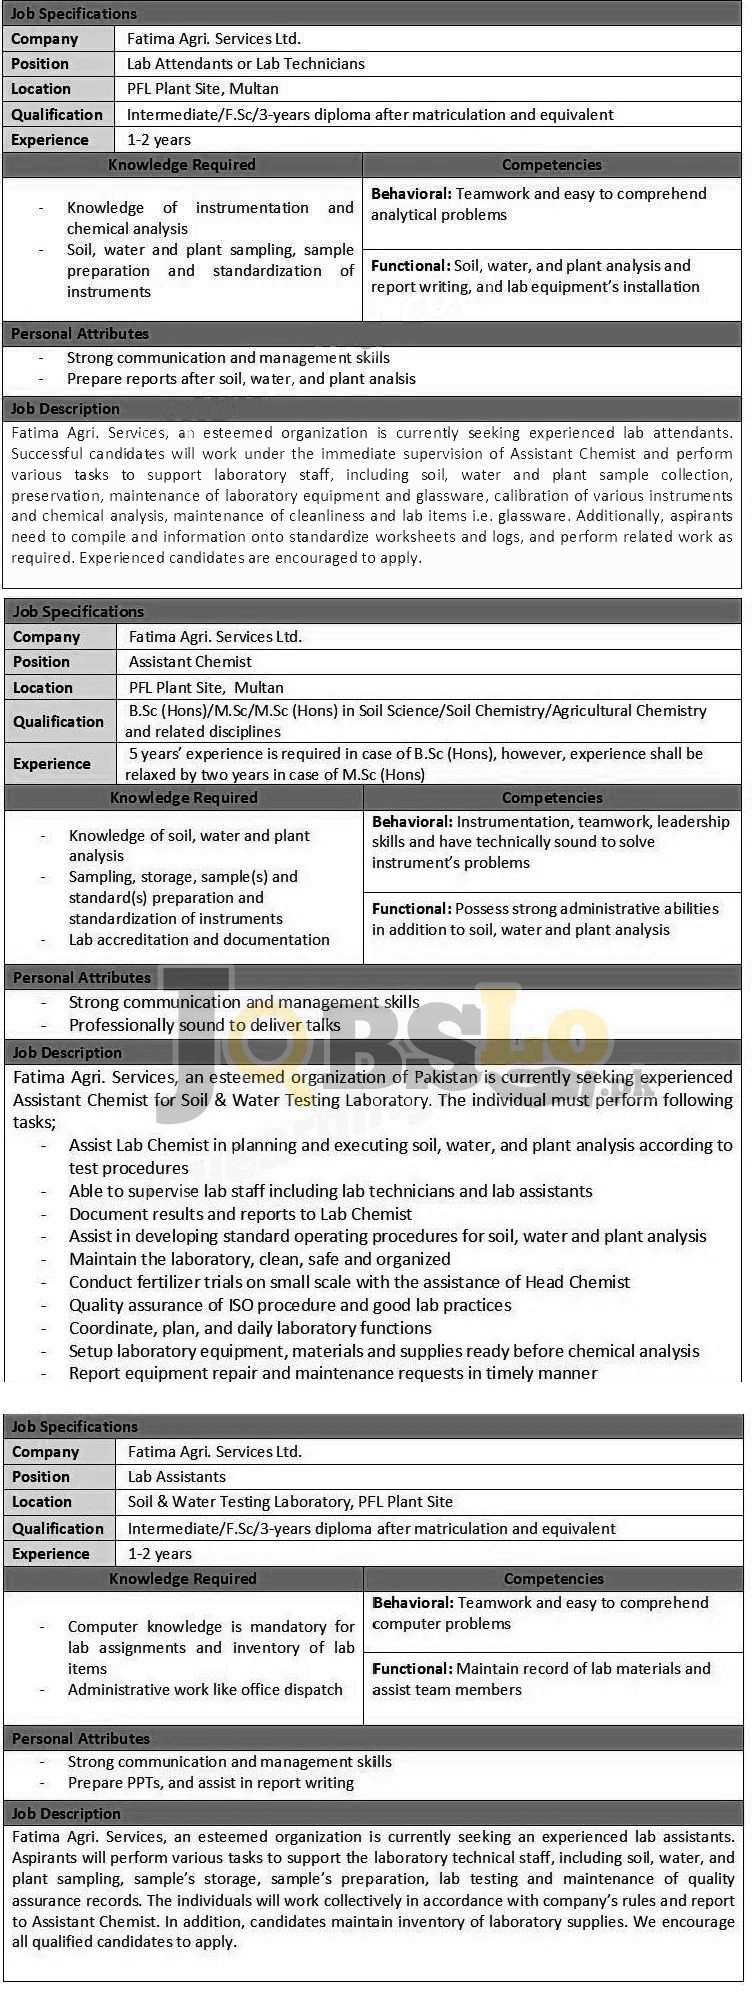 Jobs in Fatima Agriculture Services Ltd Sep 2018 For Assistant Chemist & Lab Attendant